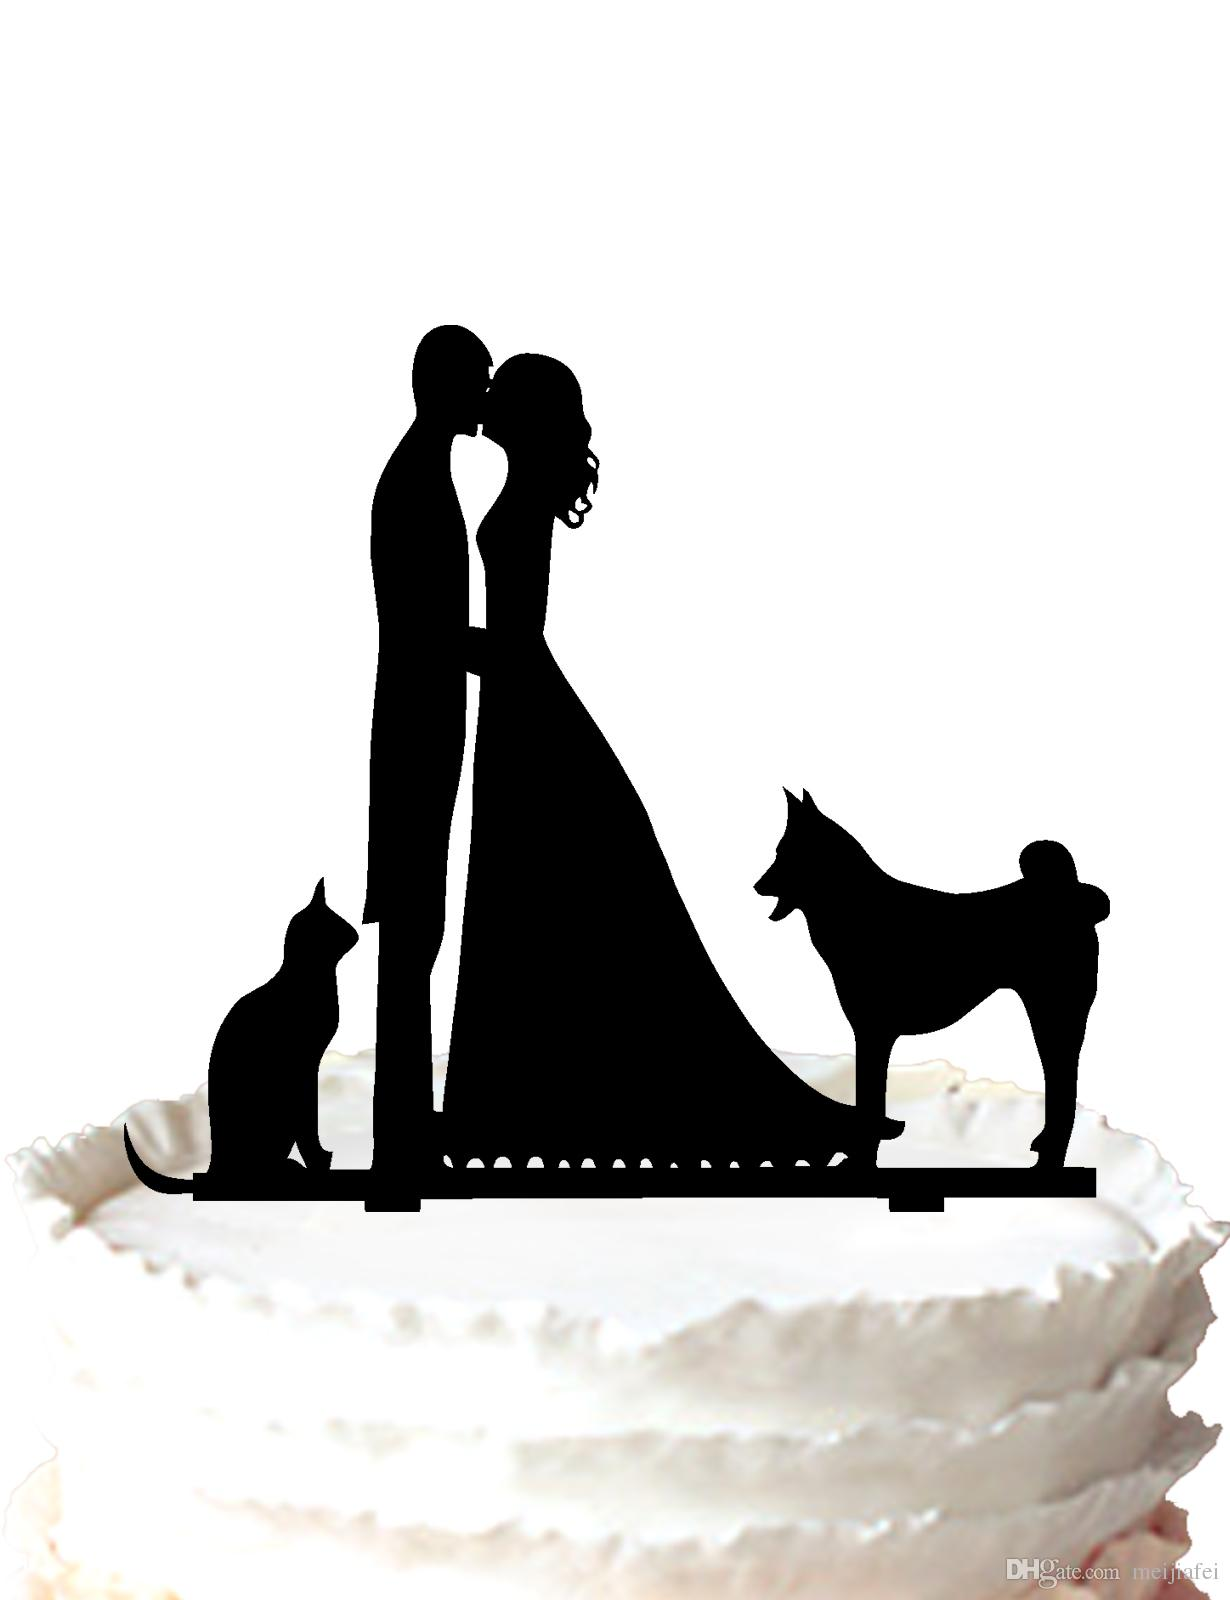 2018 Wedding Cake Topper With Bride  Groom  Cat  Dog Wedding Cake     2018 Wedding Cake Topper With Bride  Groom  Cat  Dog Wedding Cake Topper  Silhouette For Option From Meijiafei   18 21   Dhgate Com